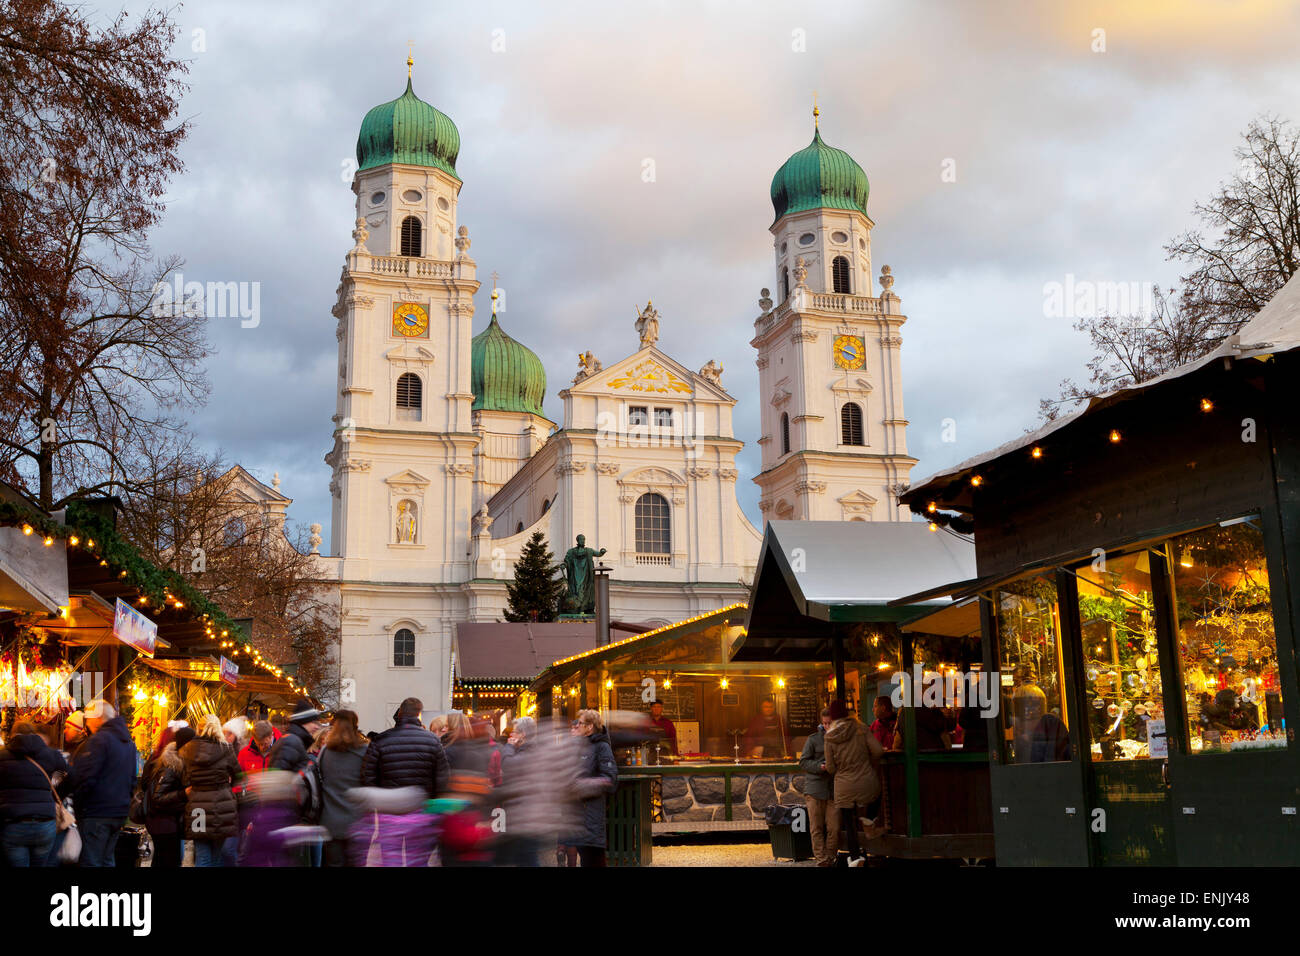 Christmas Market in front of the Cathedral of Saint Stephan, Passau, Bavaria, Germany, Europe - Stock Image